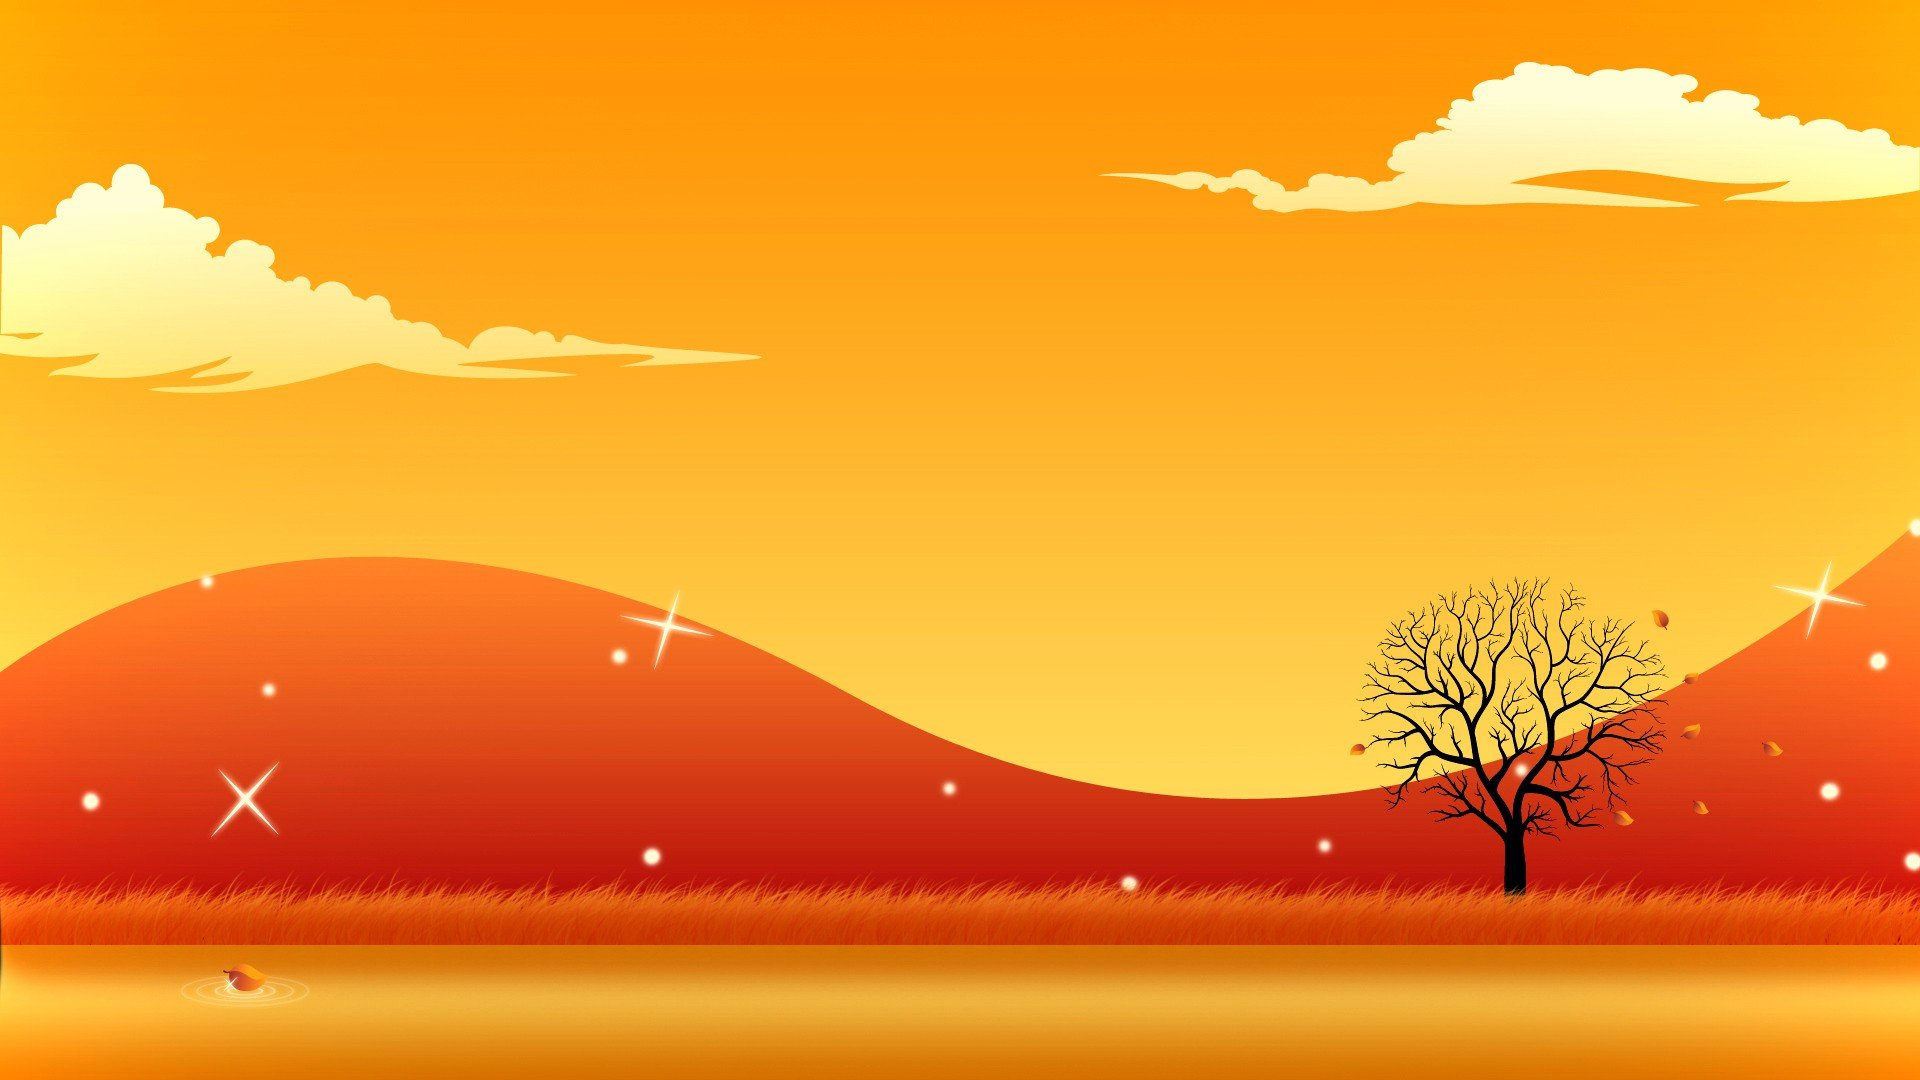 Download Vector Art Wallpaper Gallery